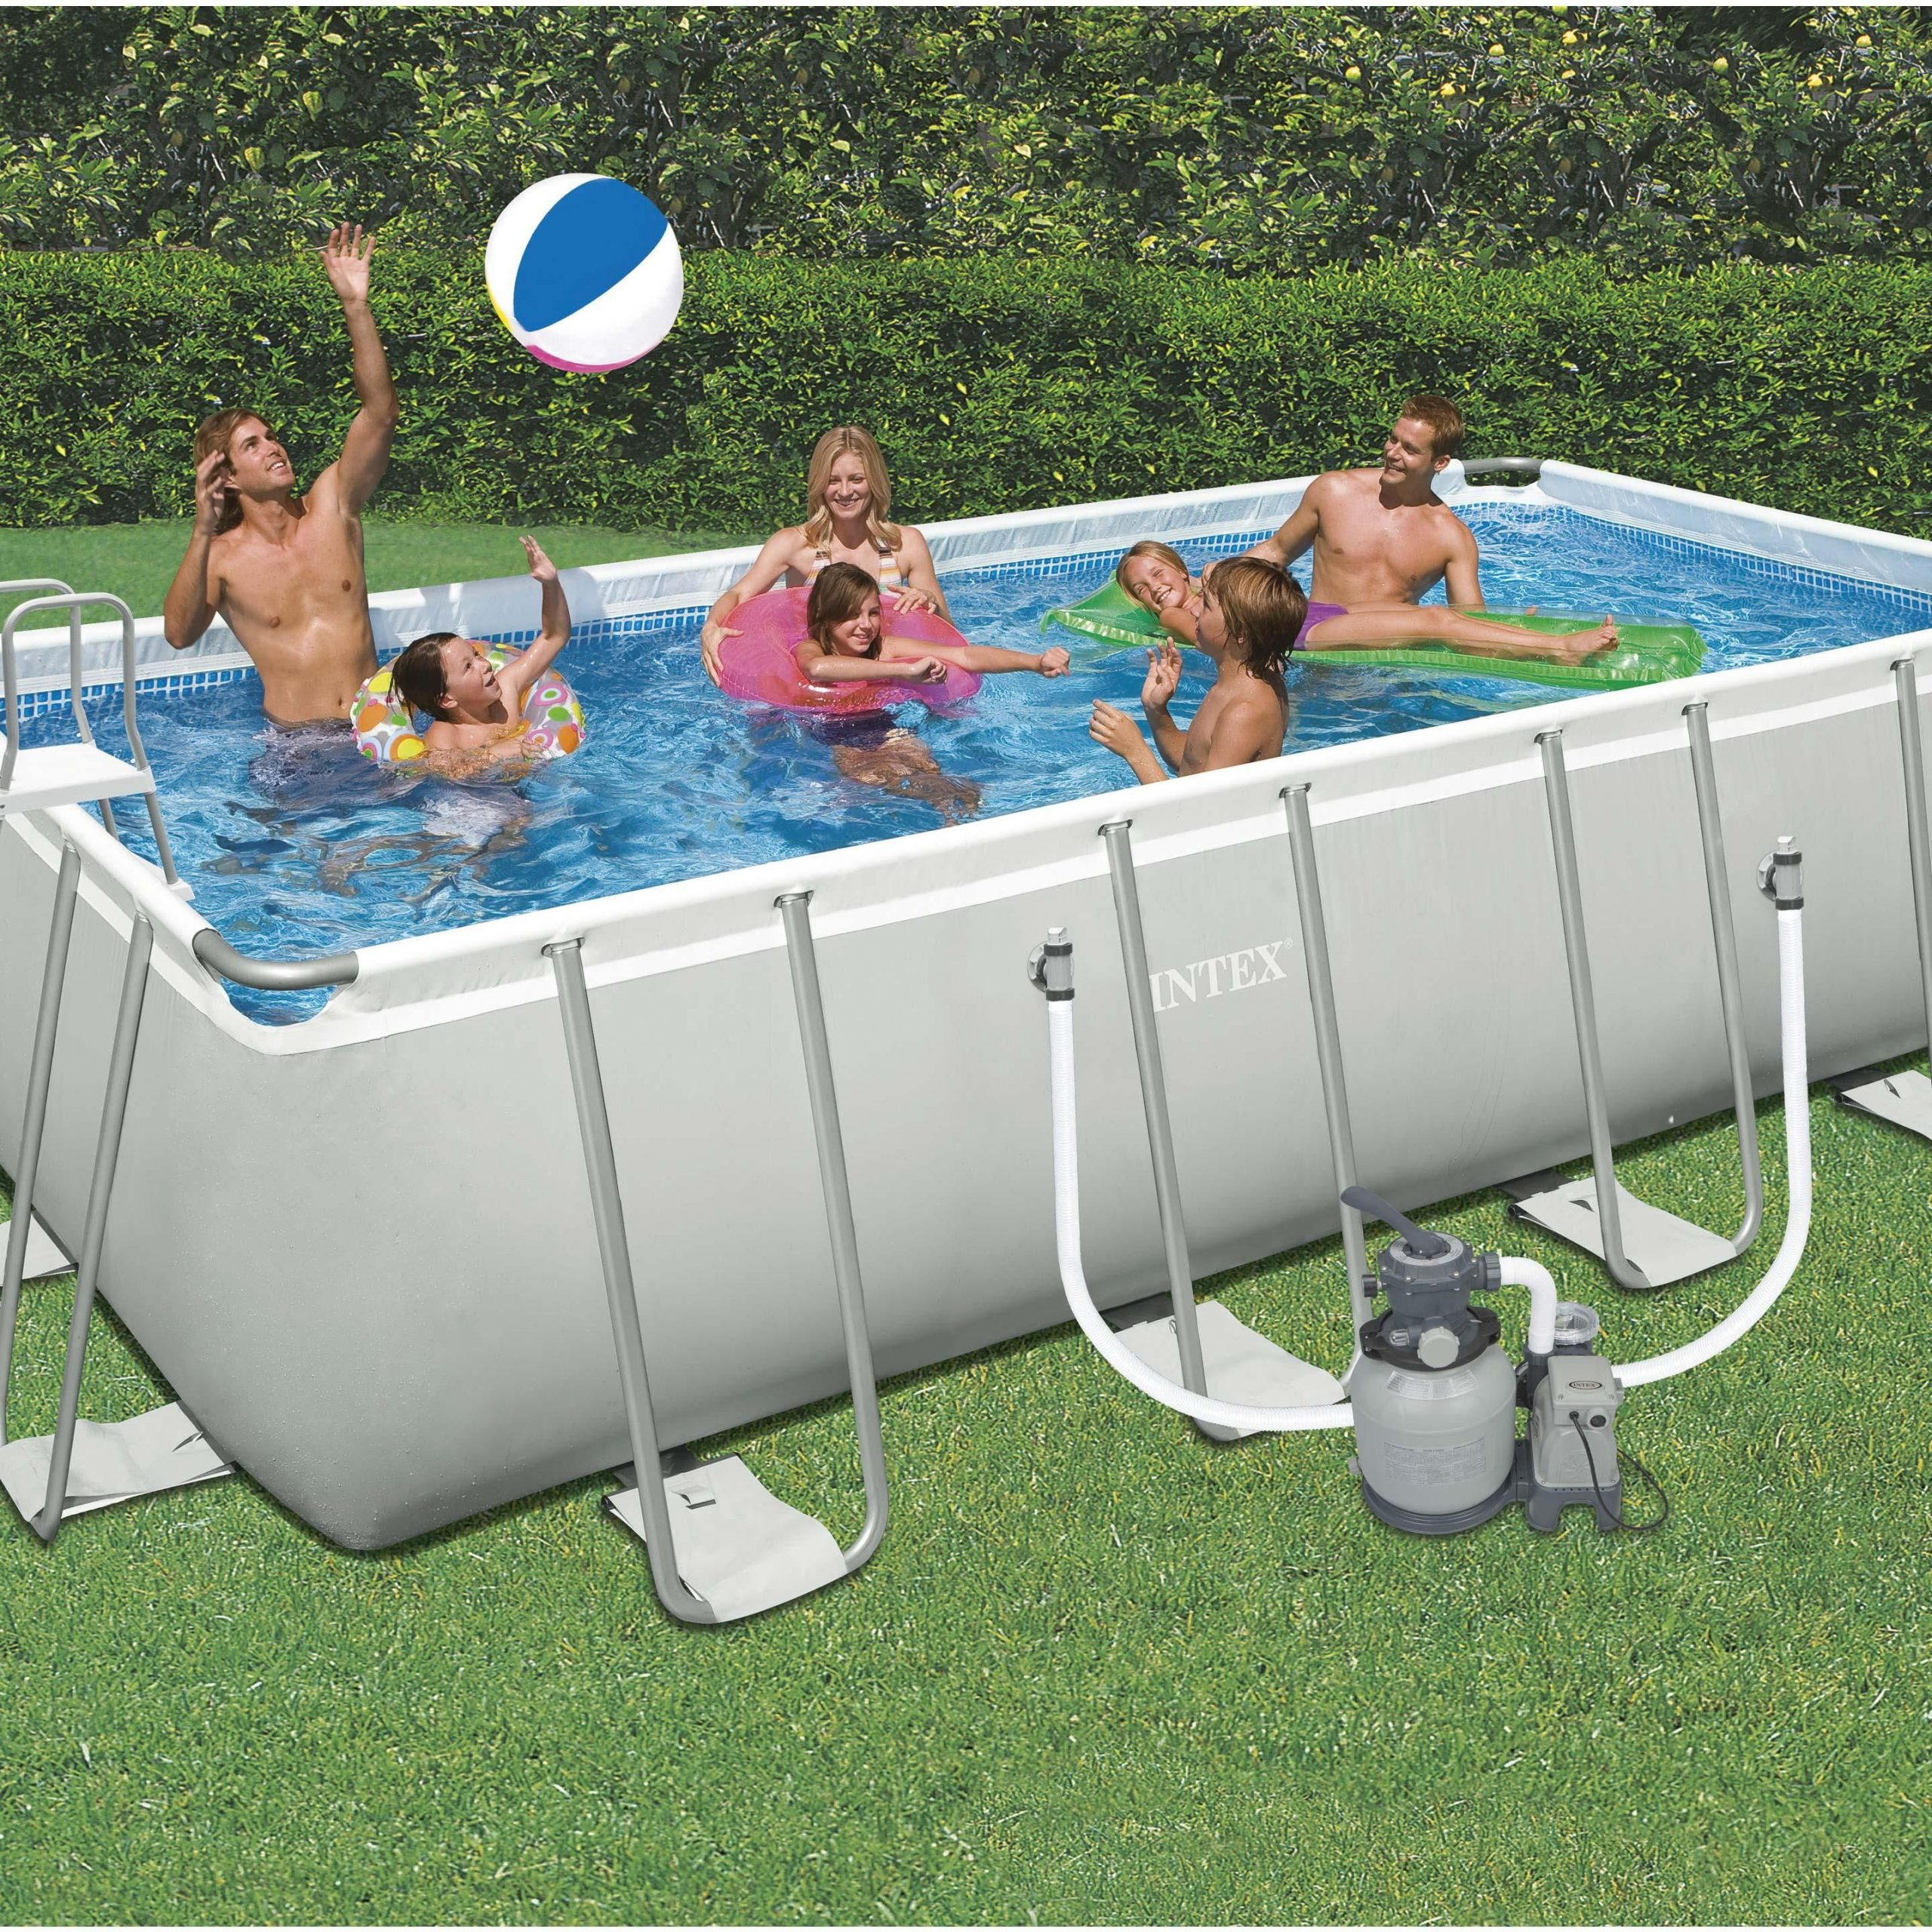 Piscine Tubulaire Ultra Intex, L.6.05 X L.3.3 X H.1.32 M En ... serapportantà Piscine Hors Sol Intex Tubulaire